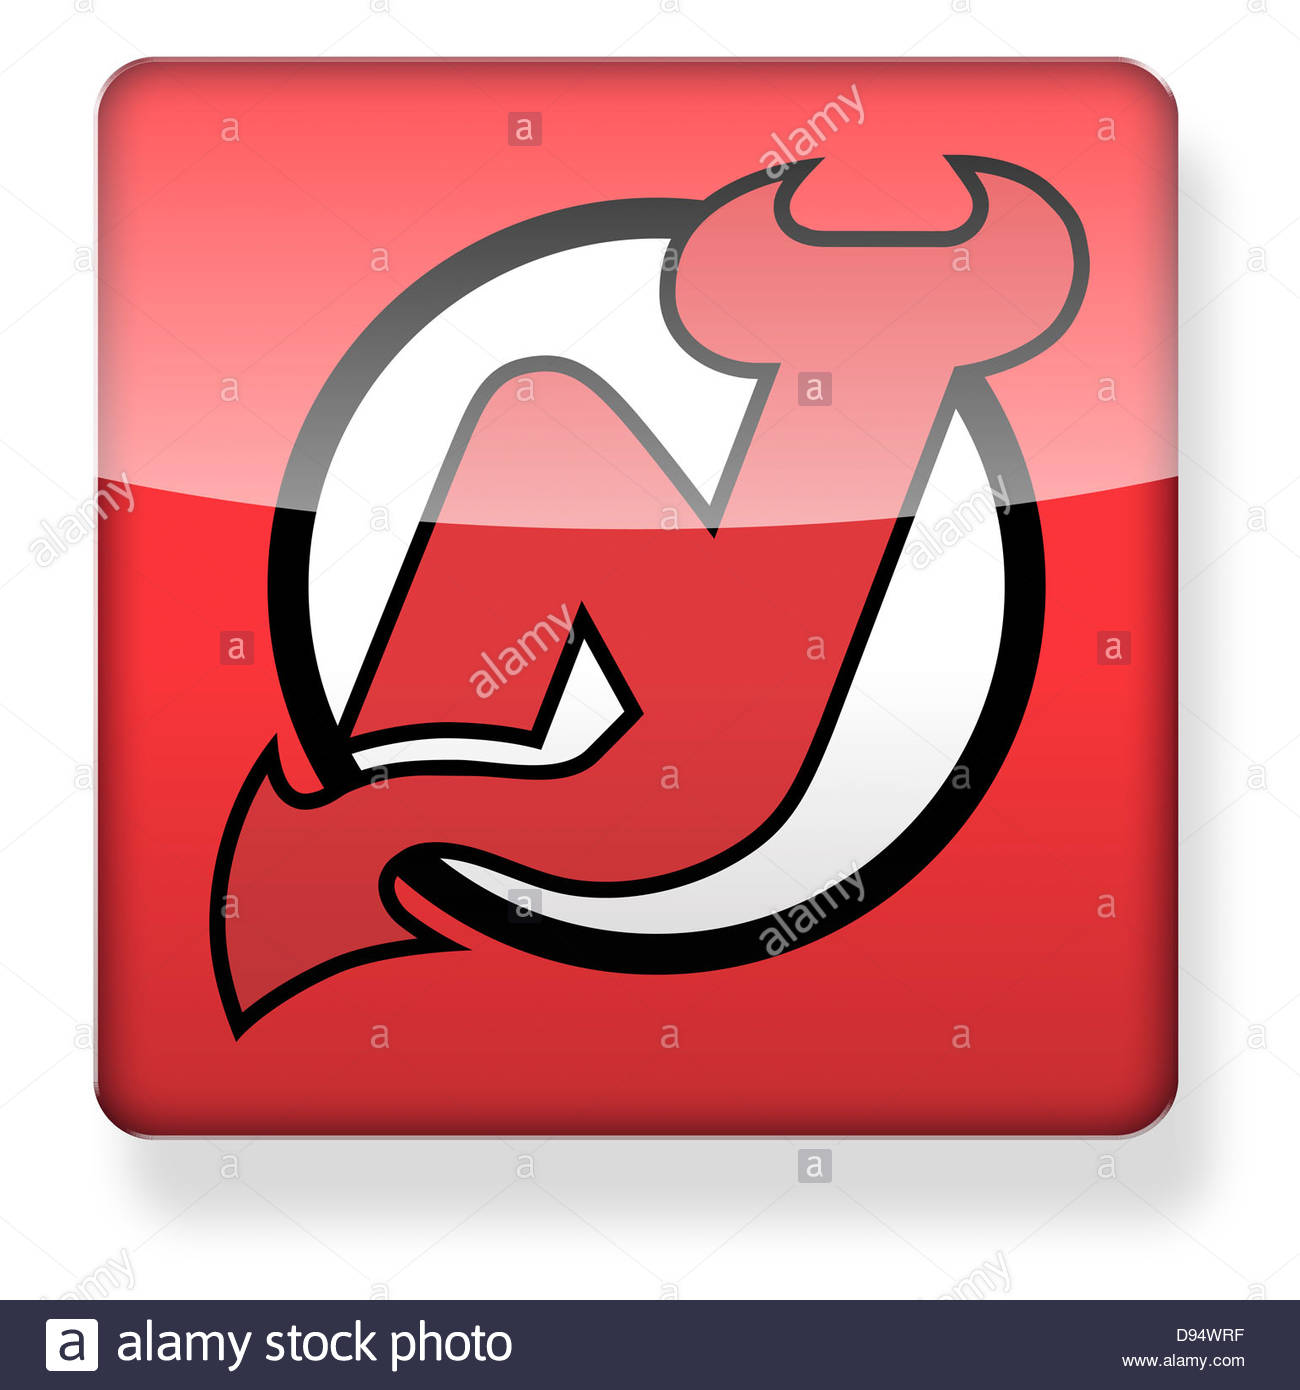 New Jersey Devils Hockey Team Logo As An App Icon. Clipping Path ...